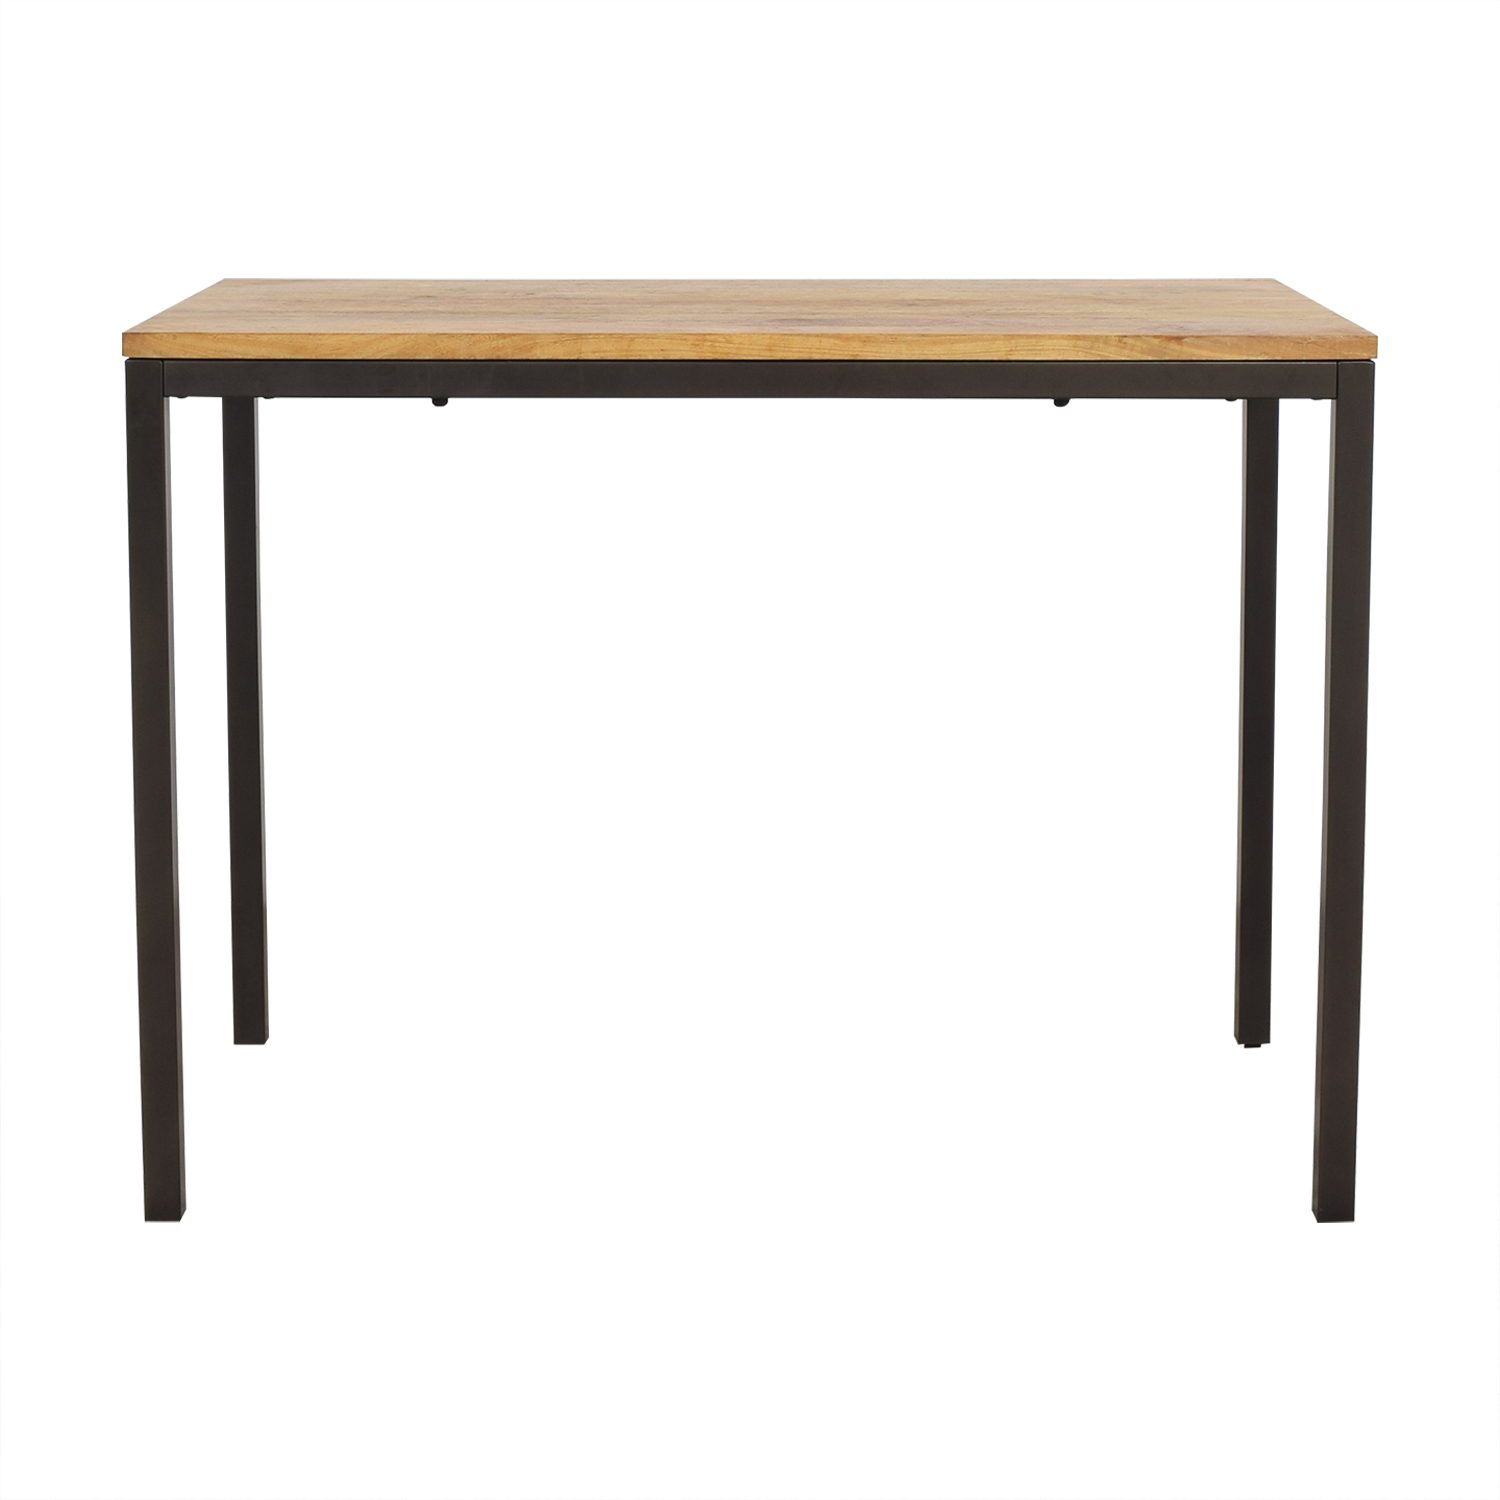 West Elm West Elm Box Frame Dining Table second hand